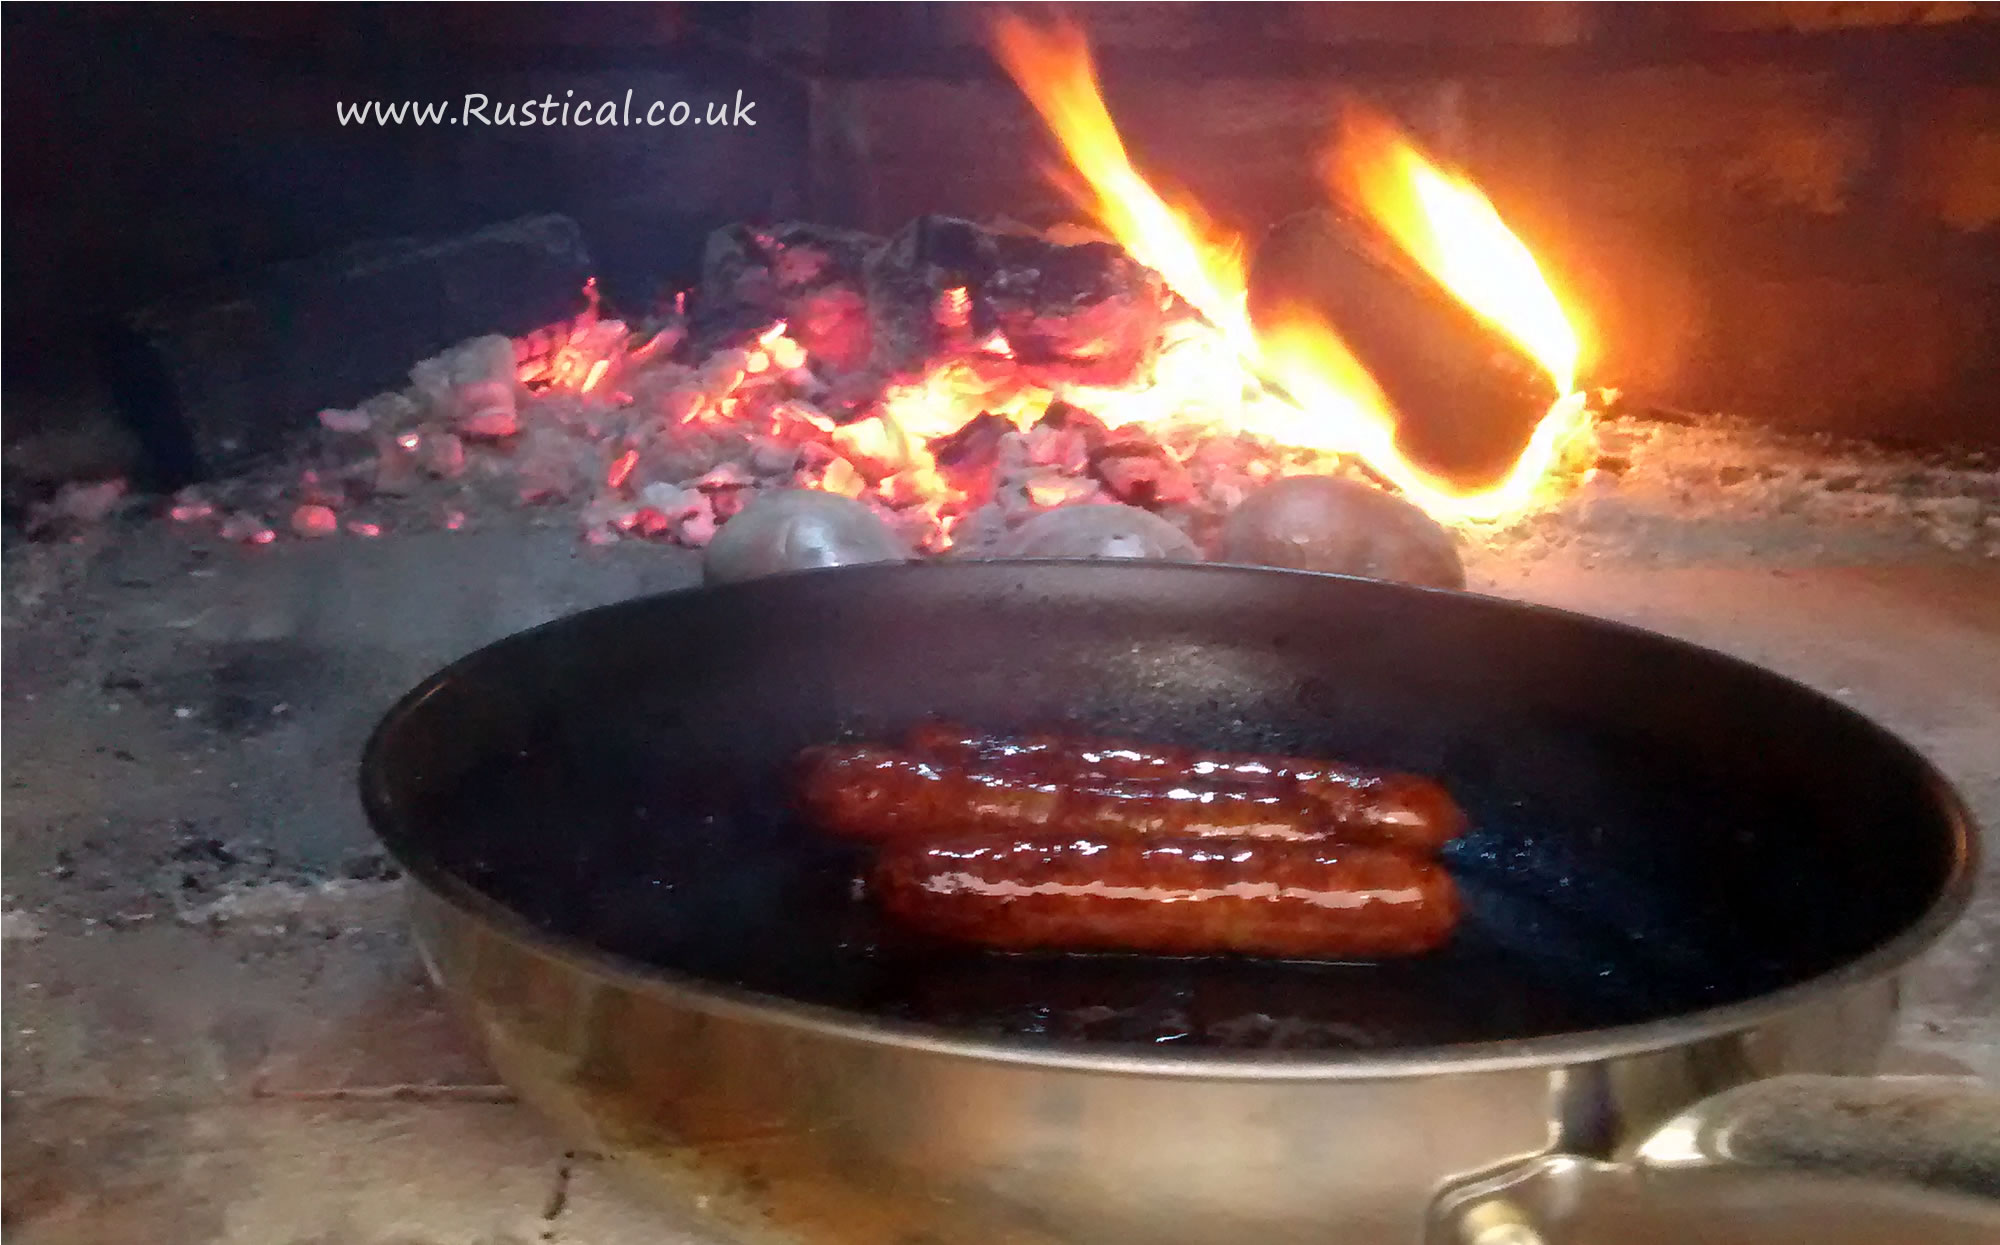 Cooking Sausages in a wood fired oven